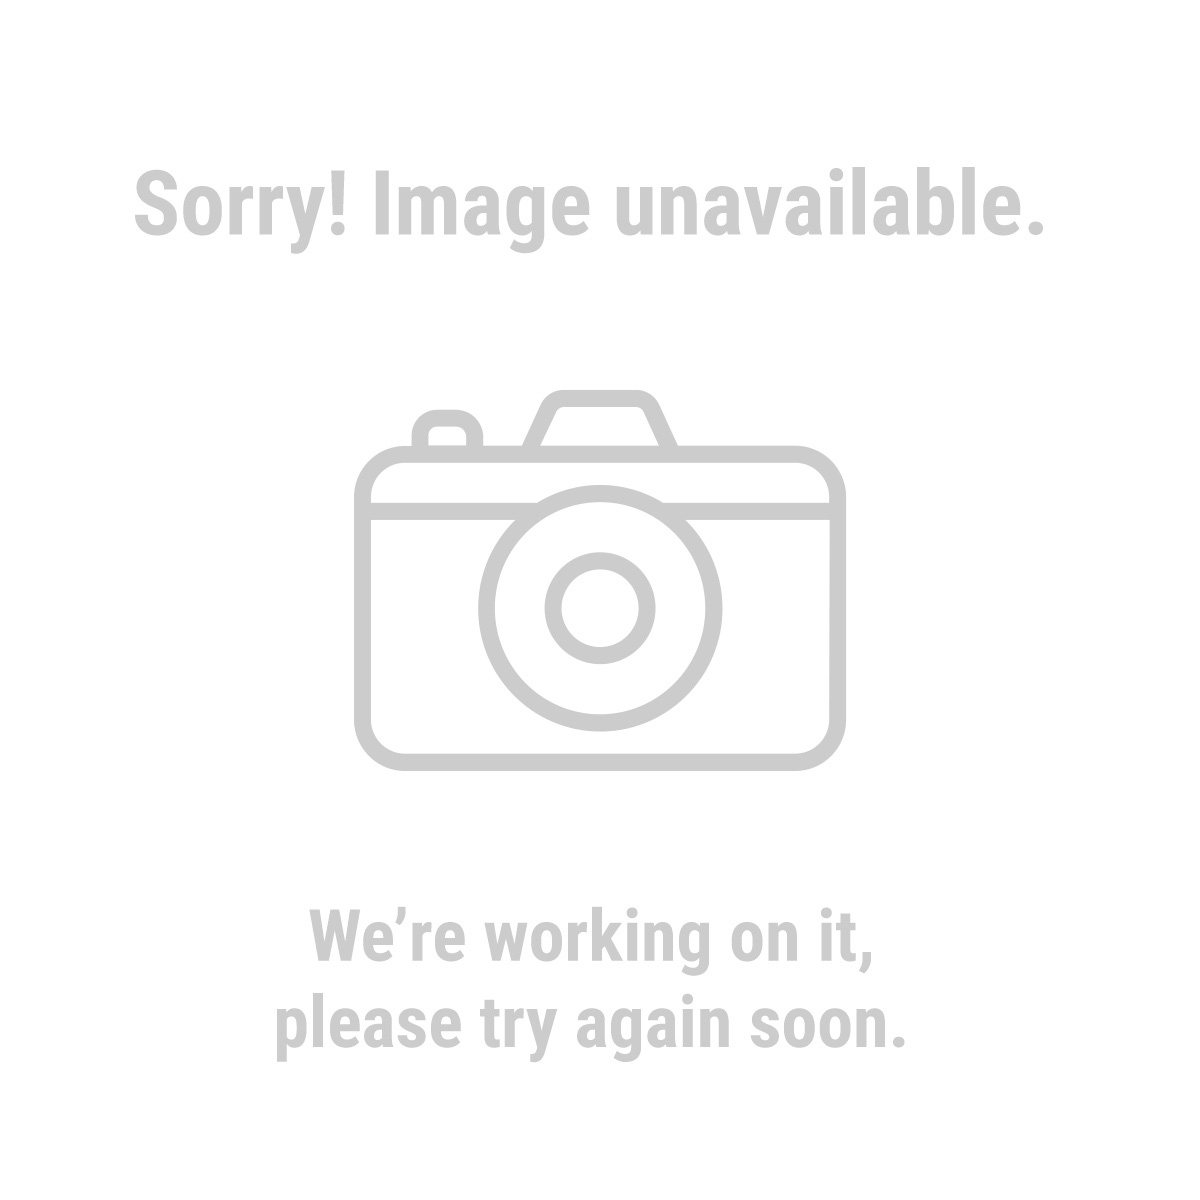 Pittsburgh Automotive 68701 12 Ft. 8 Gauge Jumper Cables with Inline Battery Tester